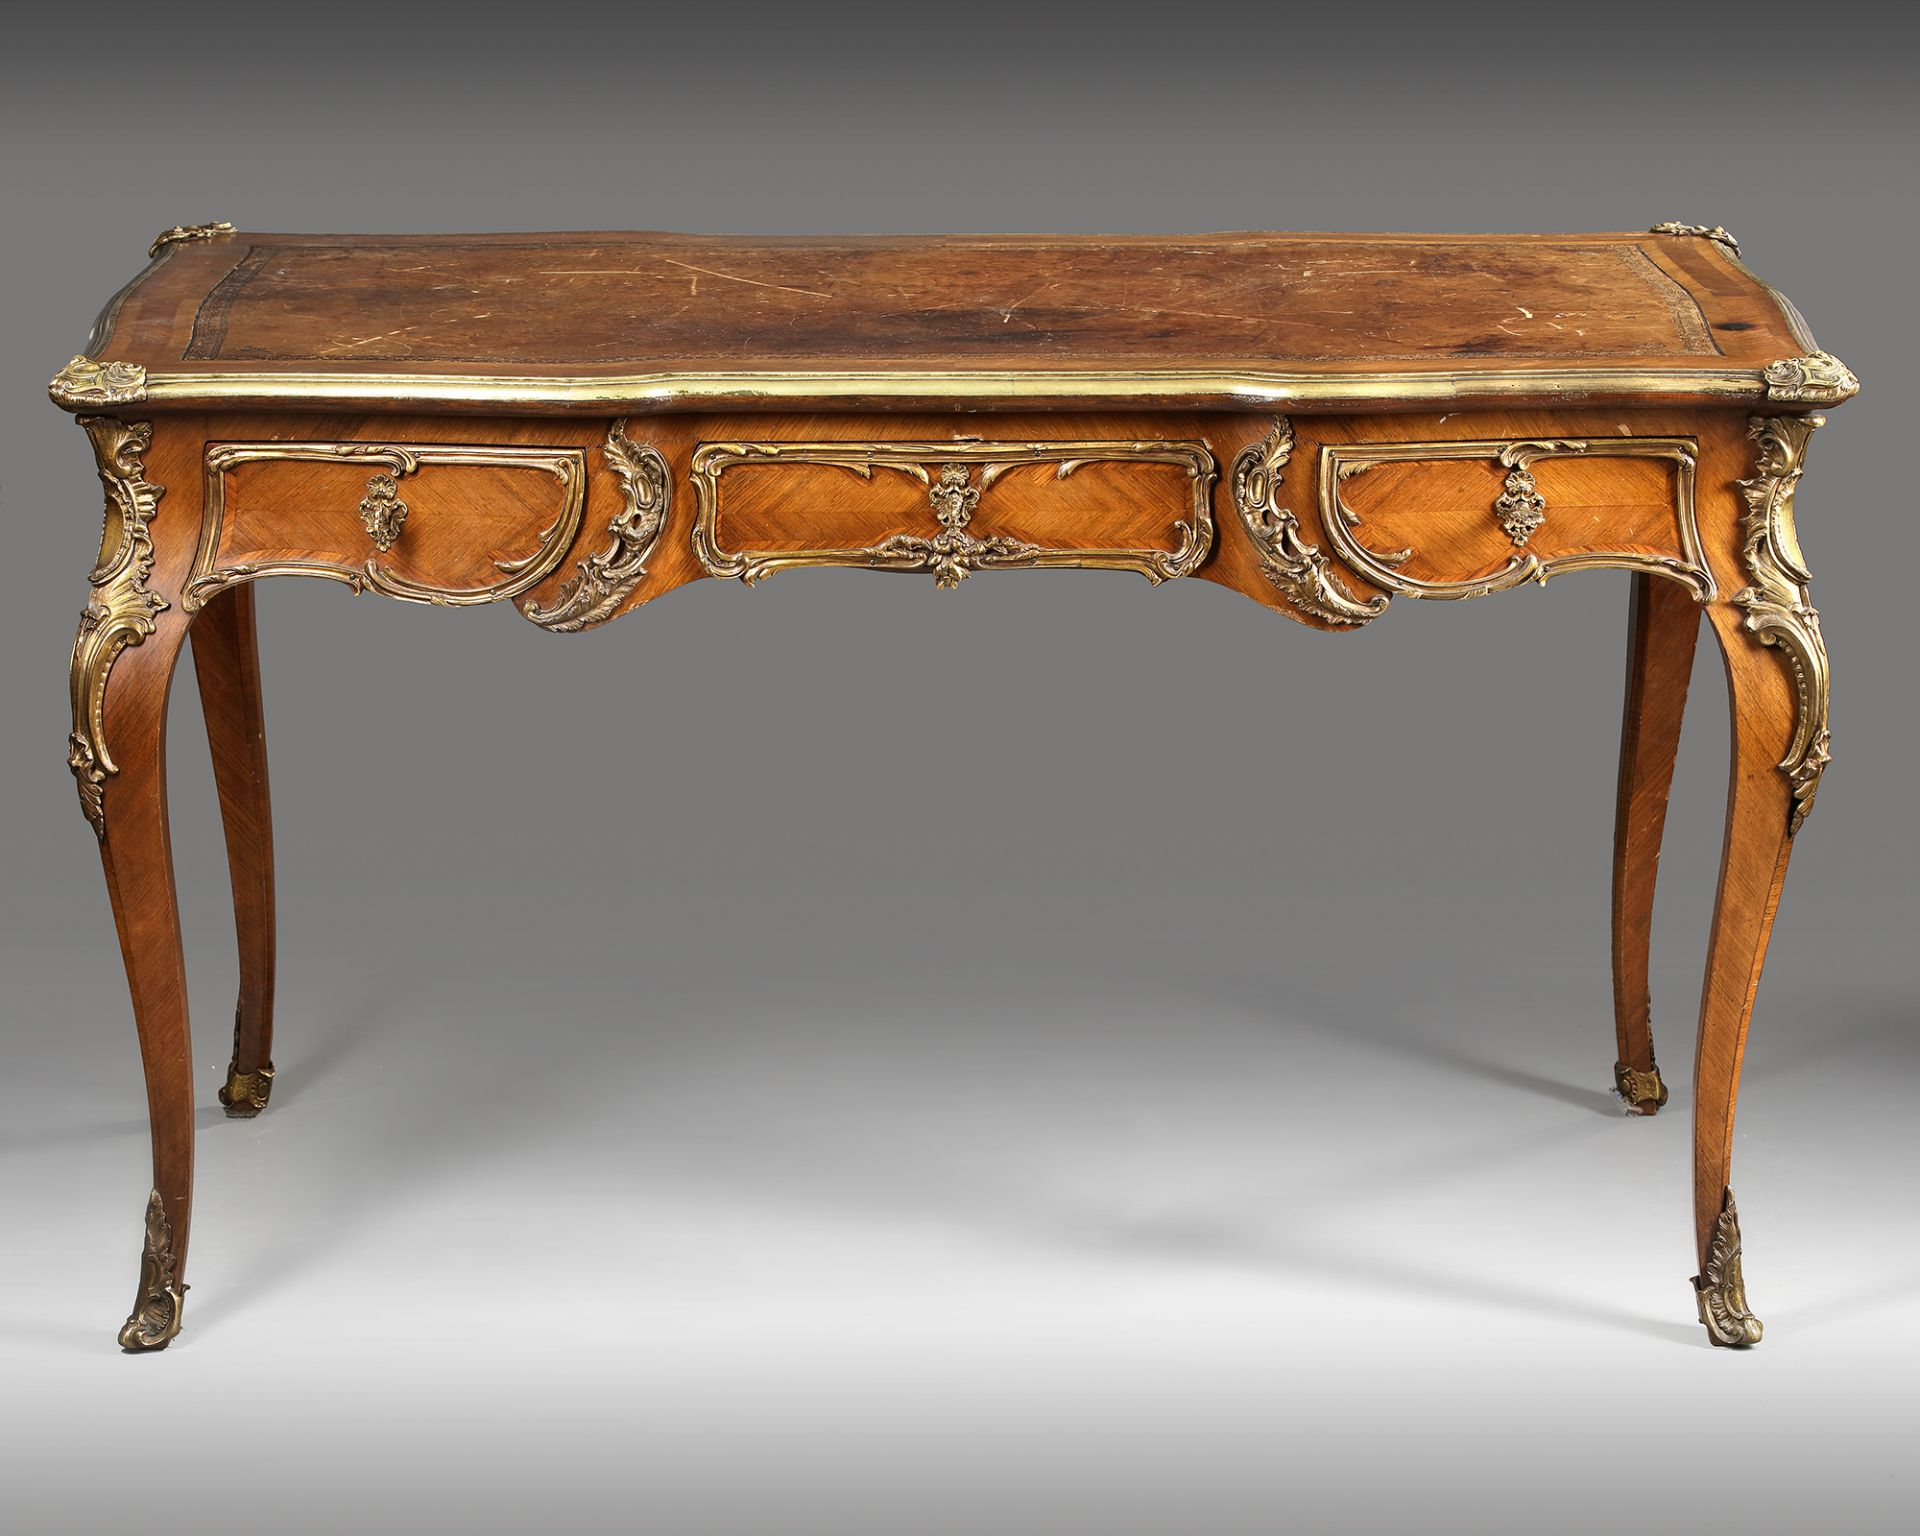 A FRENCH LOUIS XV DESK, 19TH CENTURY - Image 2 of 5